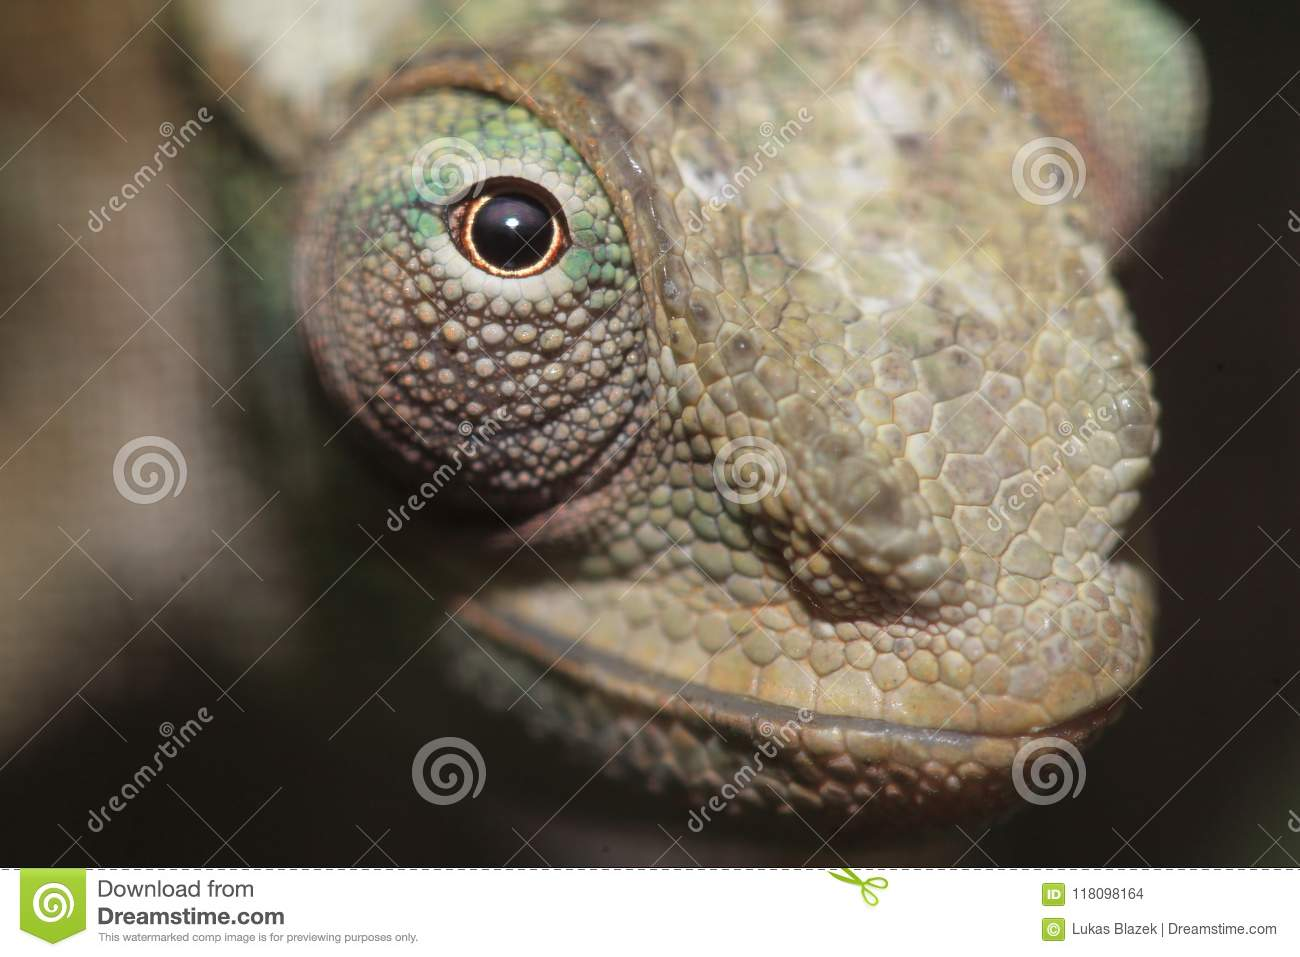 West Usambara two-horned chameleon